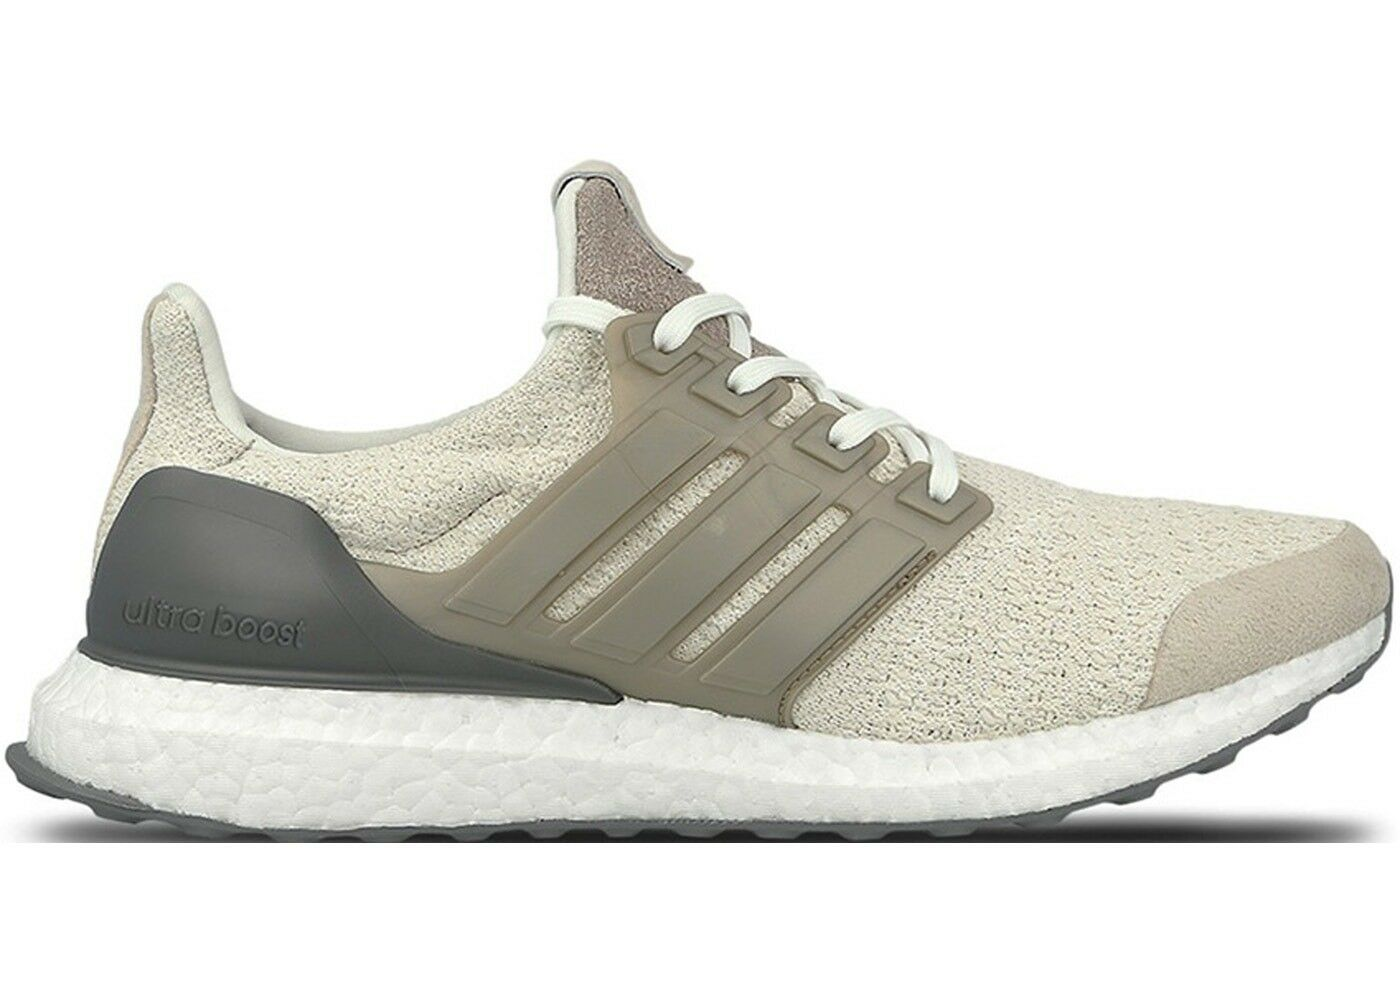 Adidas SNS X Social Status Lux UltraBoost Price reduction